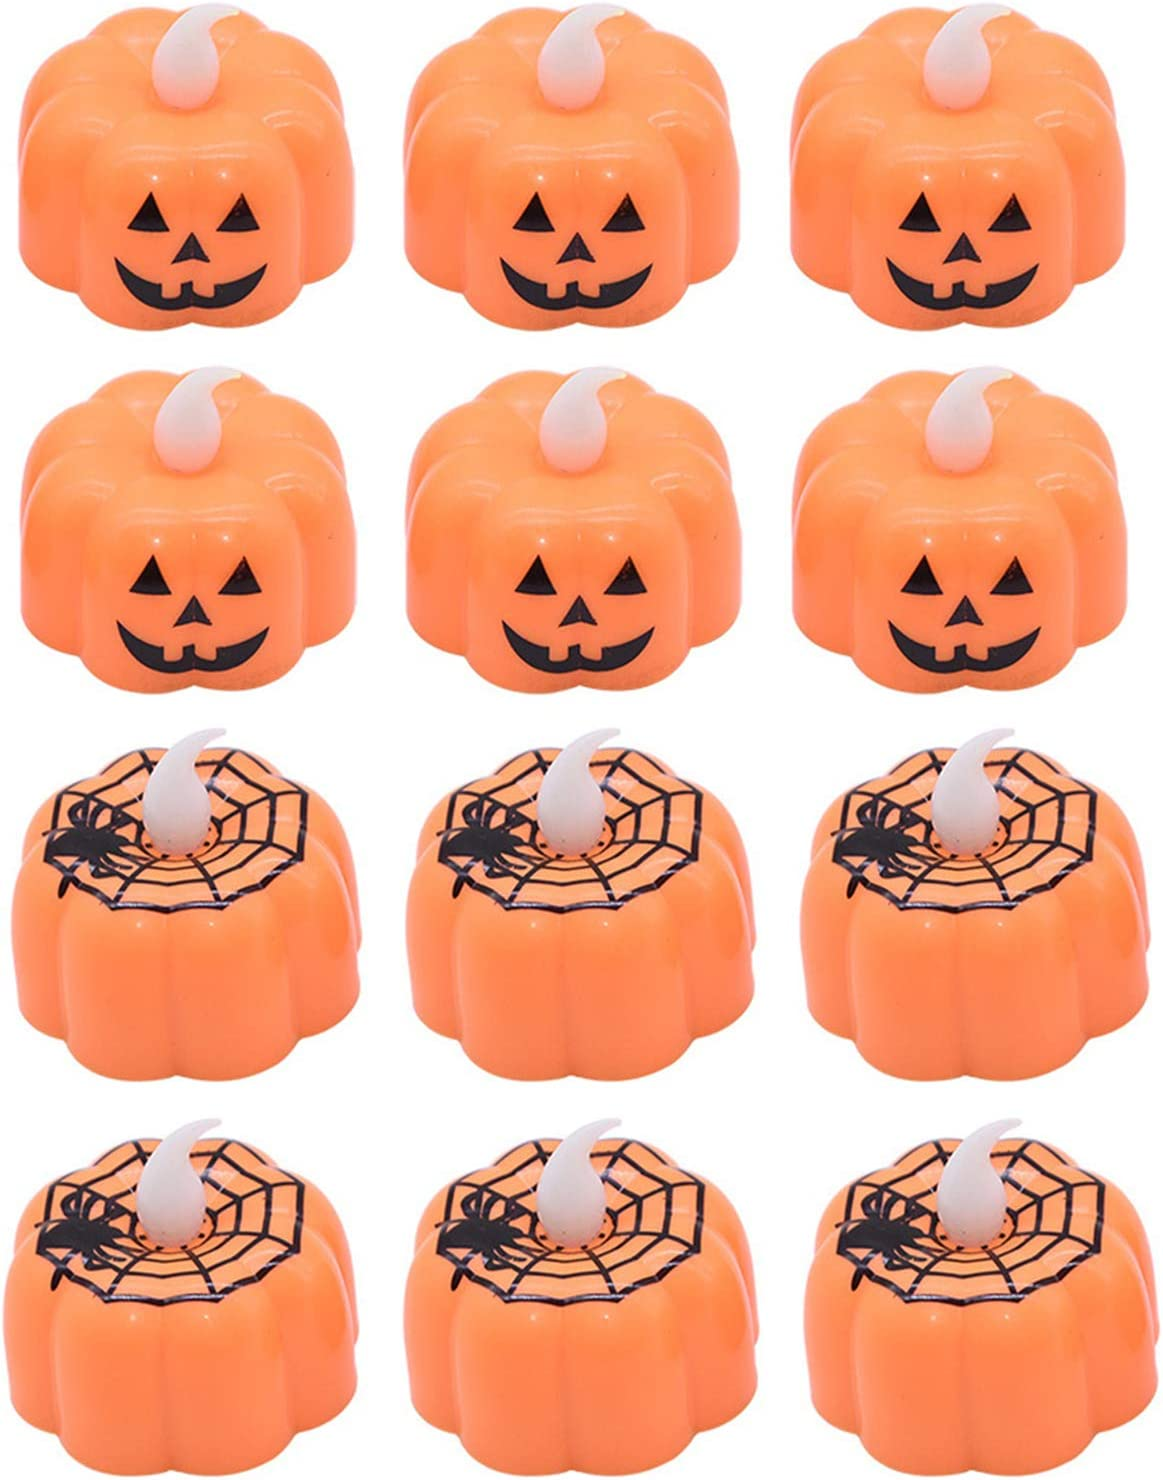 12PCS 3D Pumpkin Flameless Candles Realistic Led Tea Light Warm White Flickering Ghost Face Candles Fall Halloween Thanksgivings Indoor Home Decor